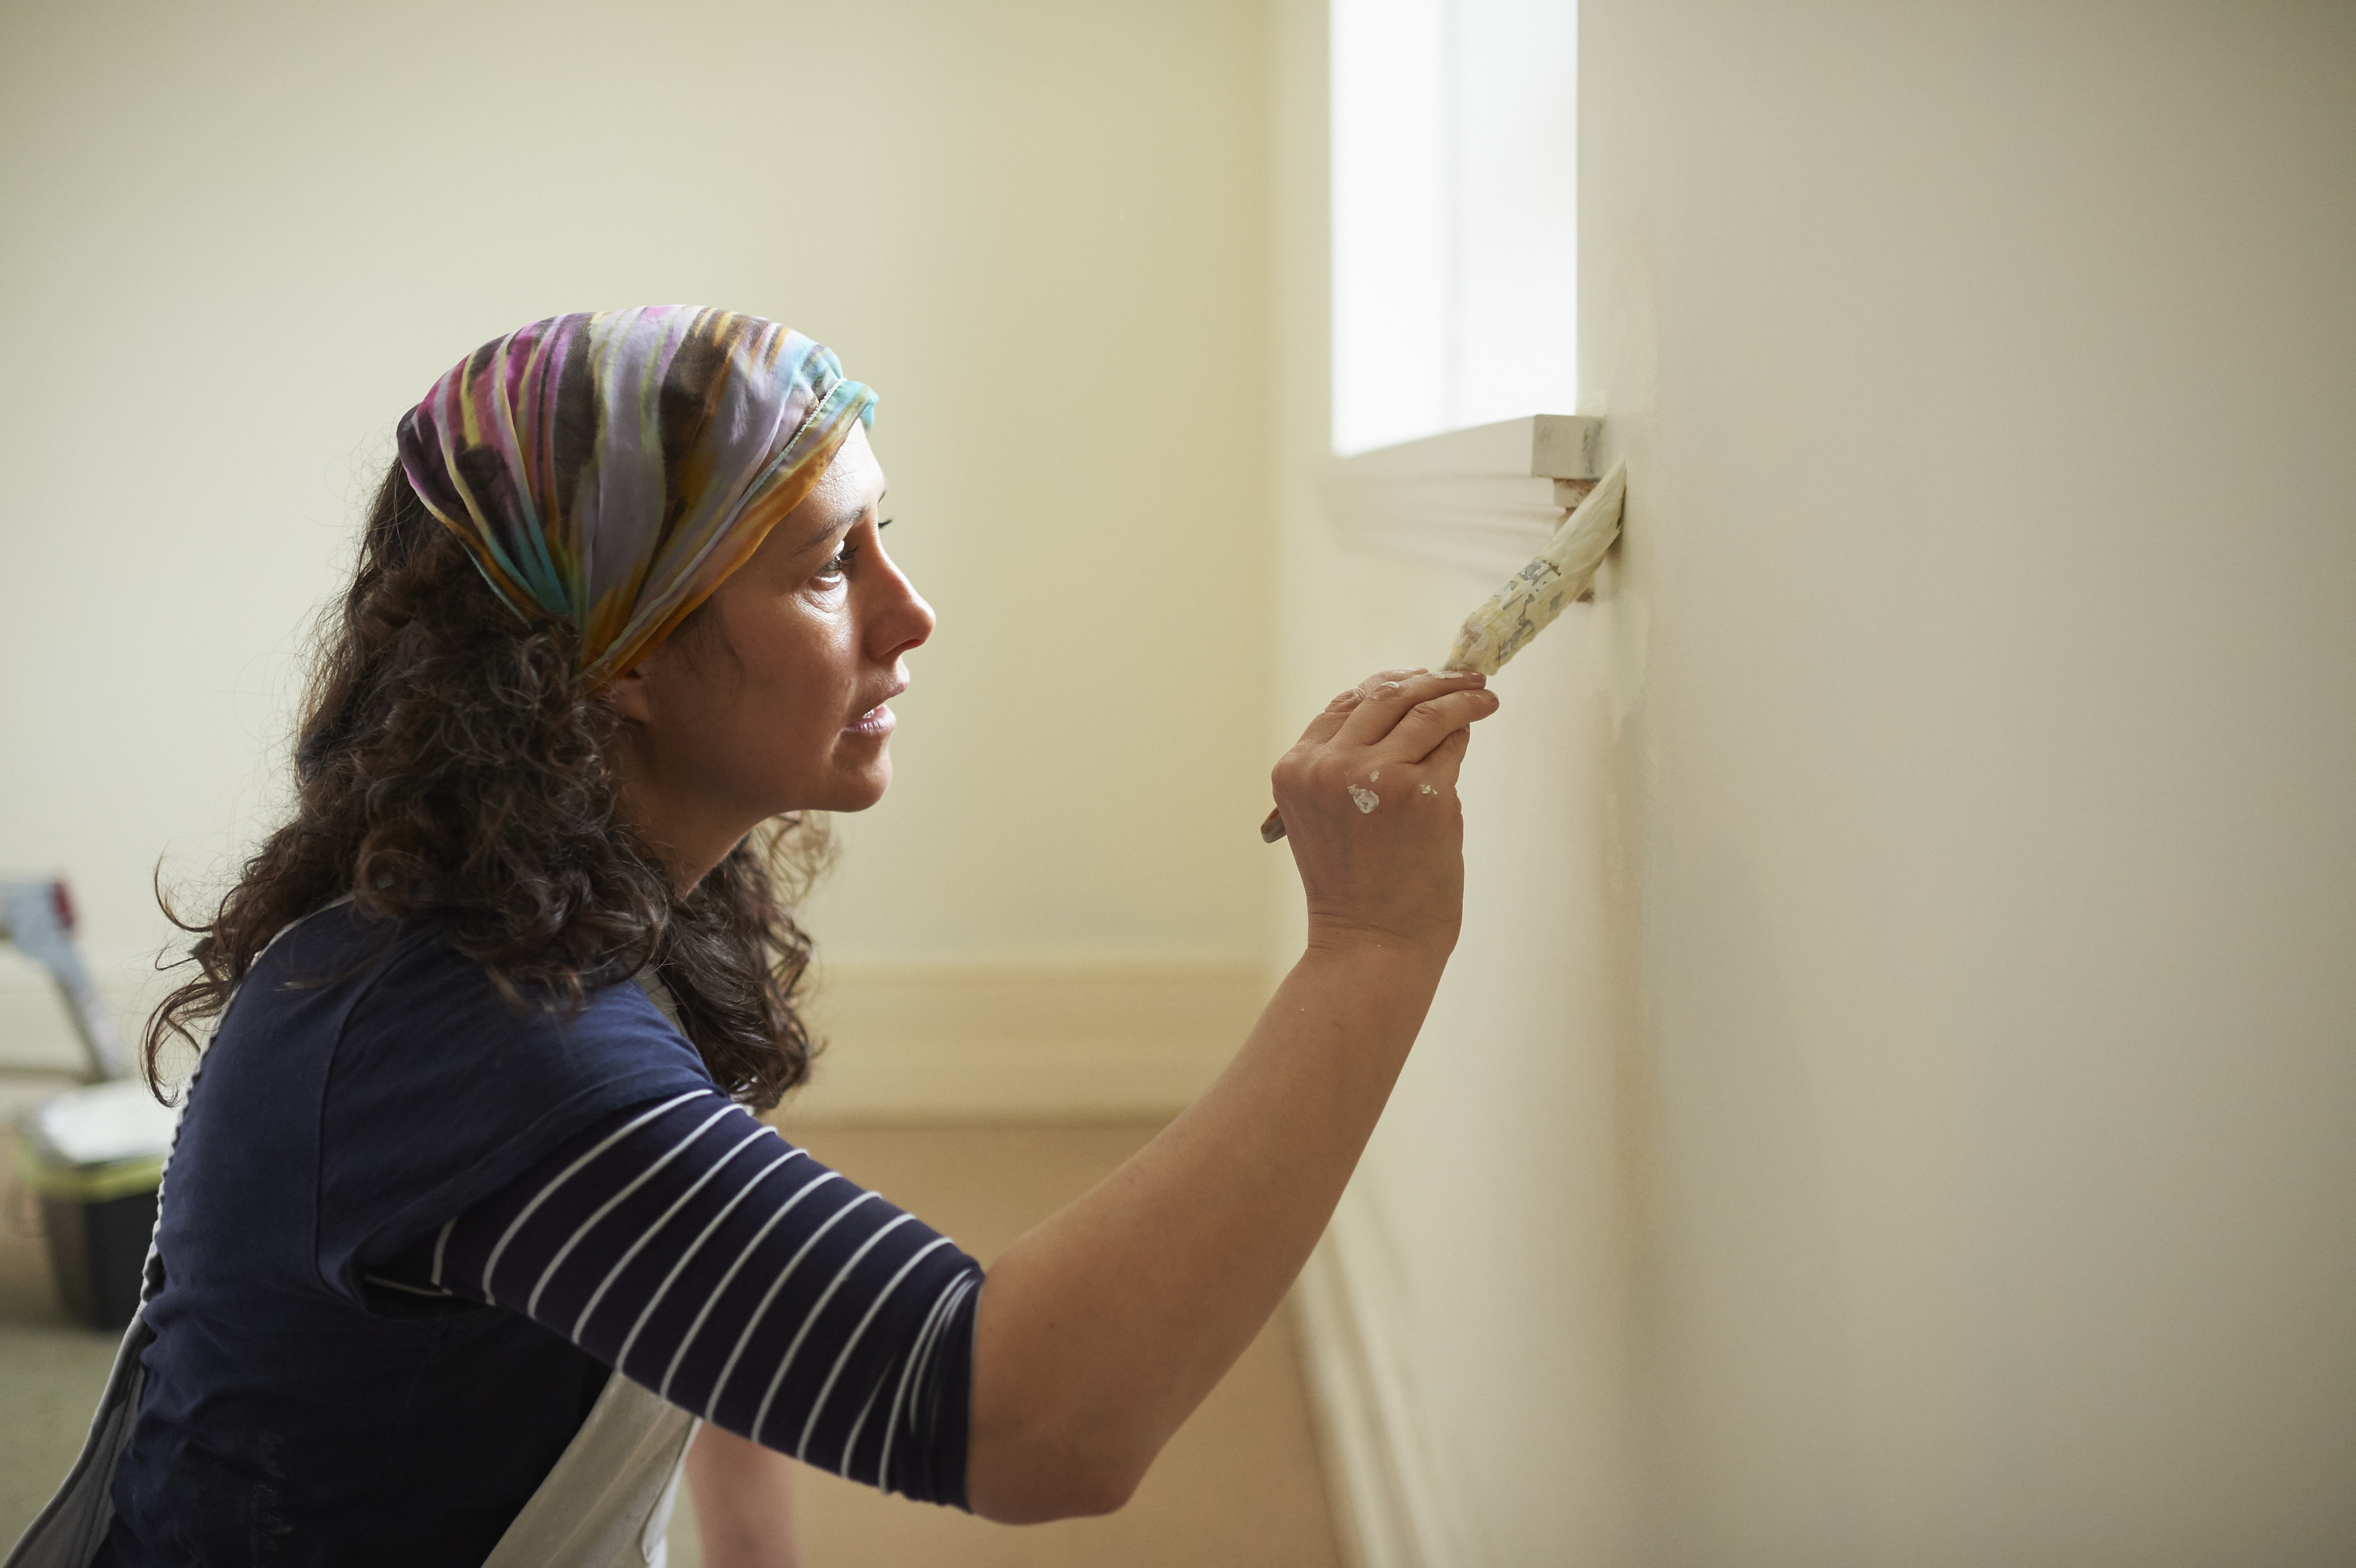 How to Estimate Commercial Painting Costs | Bizfluent